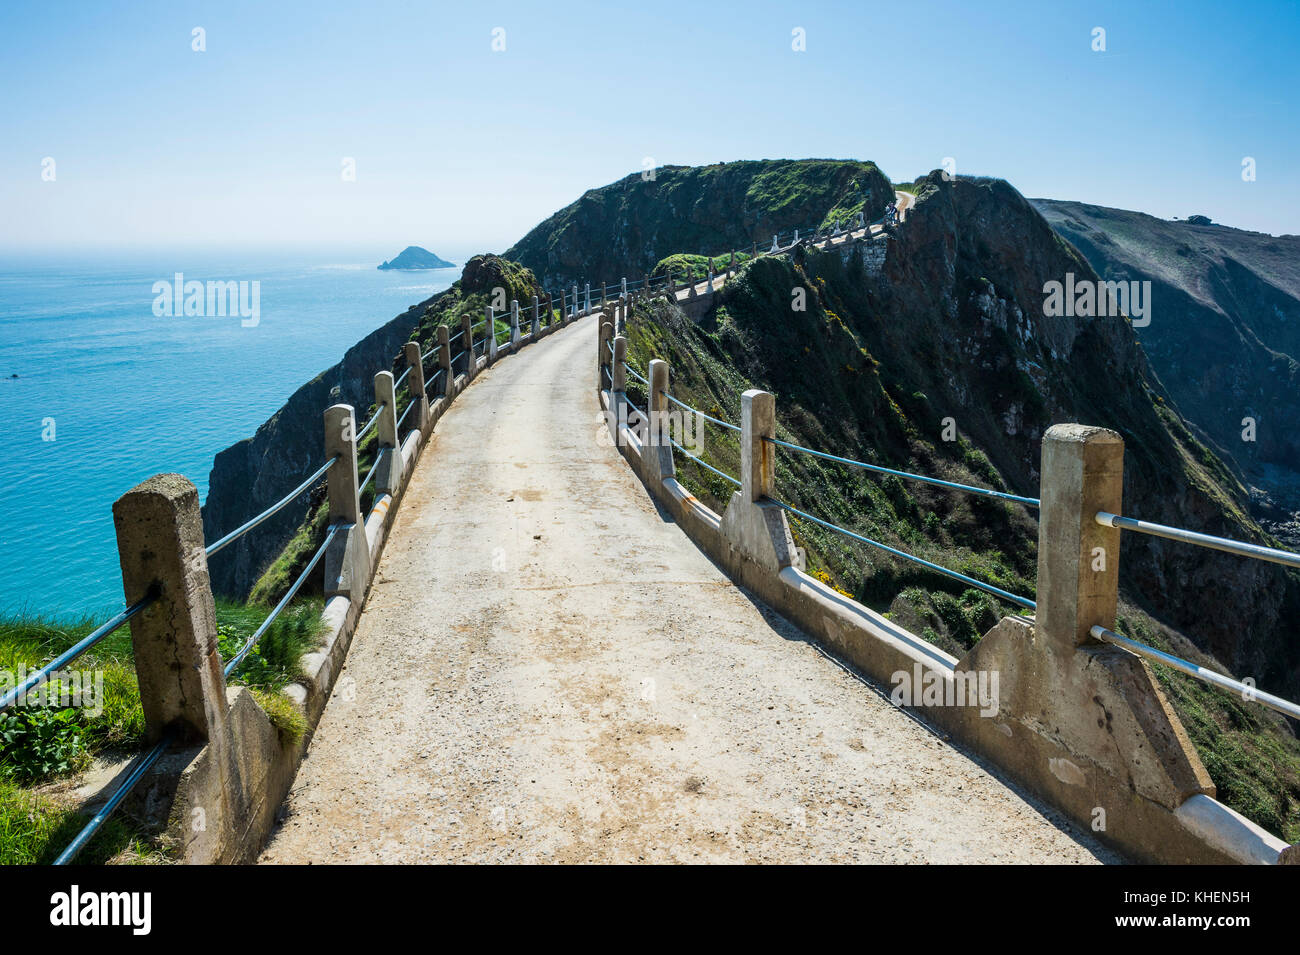 Road connecting the narrow isthmus of Greater and Little Sark, Channel islands, Great Britain - Stock Image